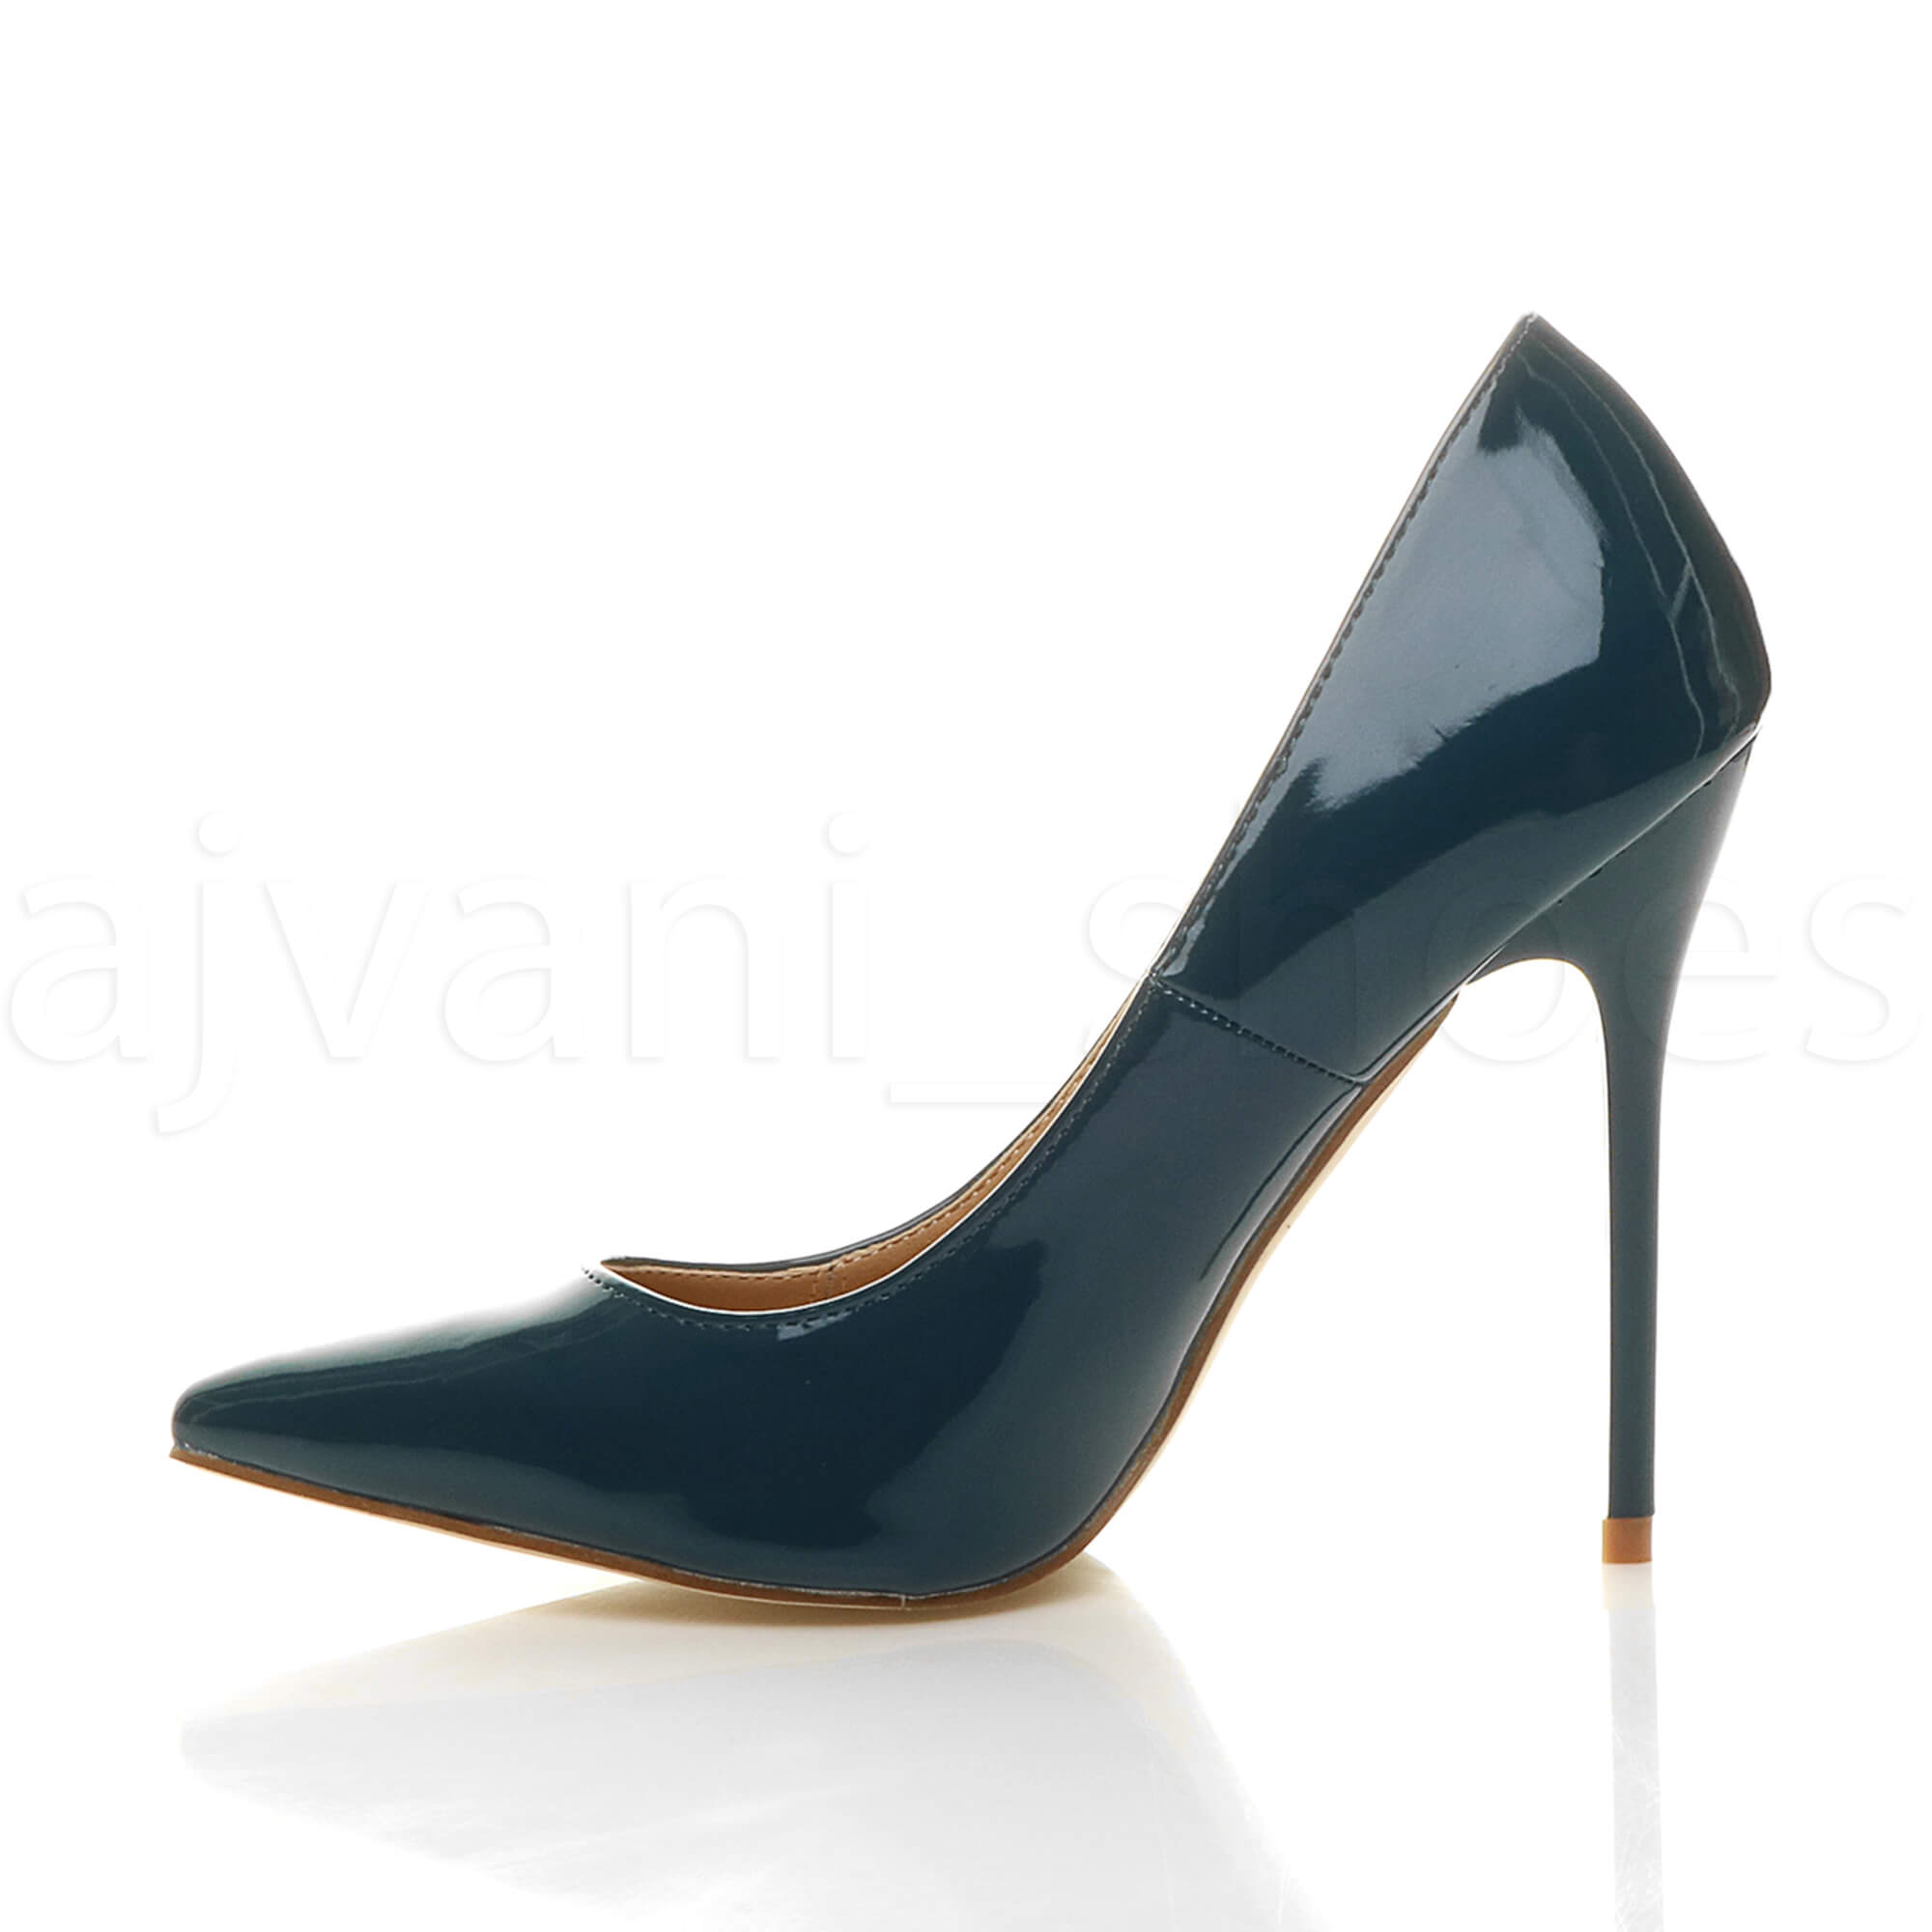 WOMENS-LADIES-HIGH-HEEL-POINTED-CONTRAST-COURT-SMART-PARTY-WORK-SHOES-PUMPS-SIZE thumbnail 209